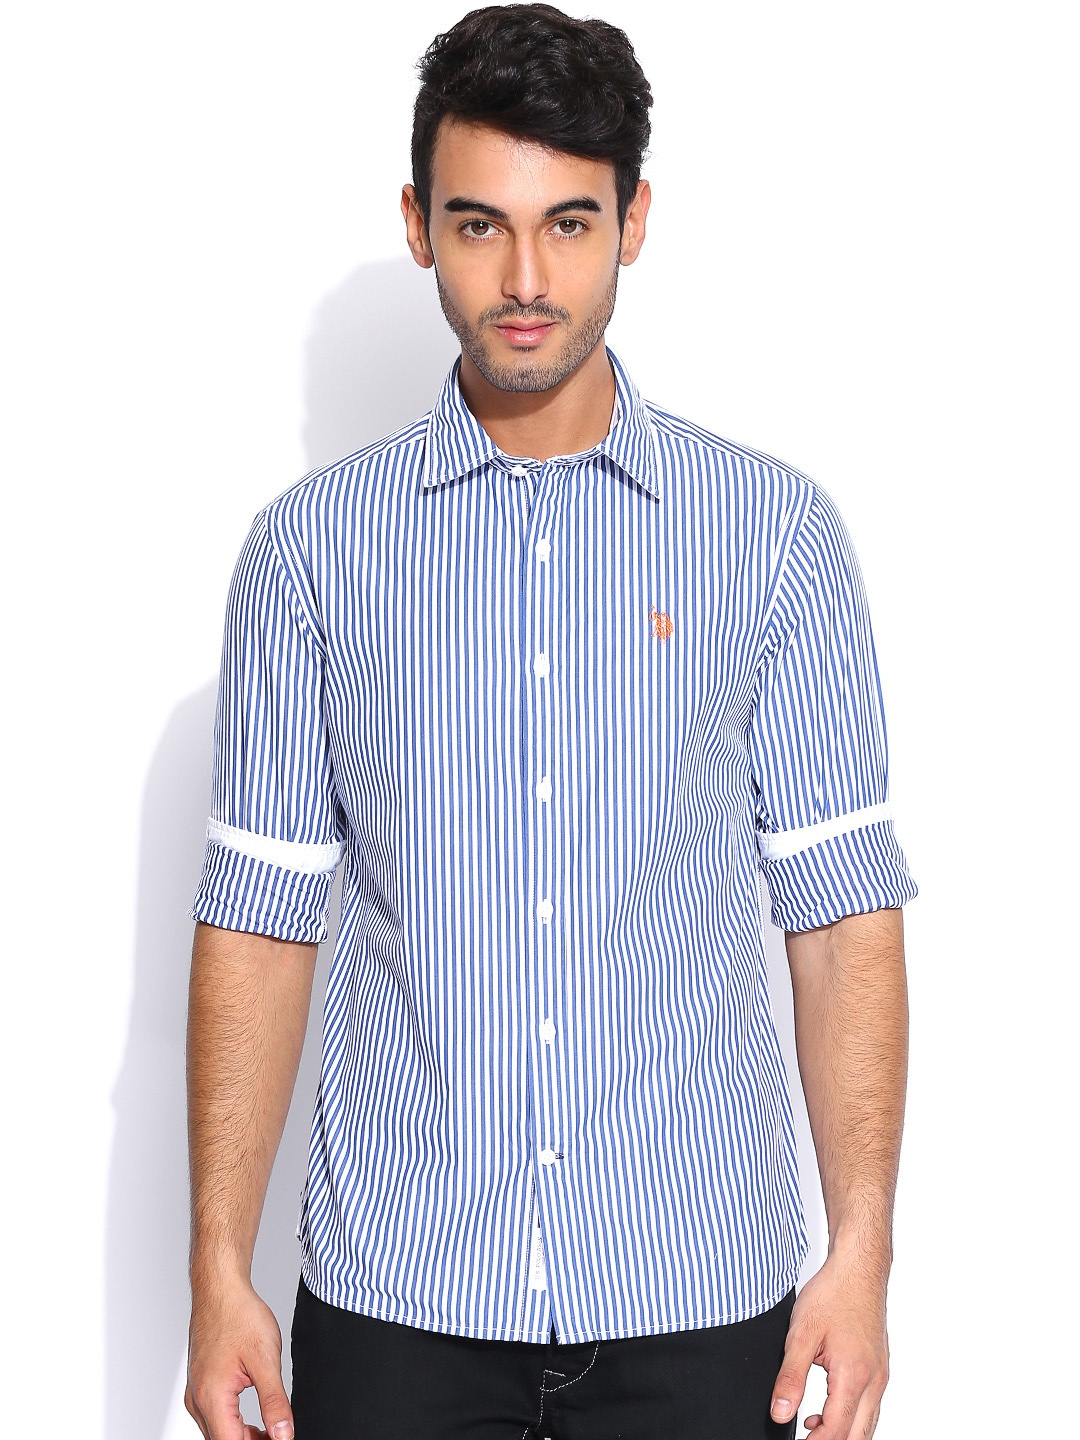 Myntra U S Polo Assn White Navy Striped Tailored Fit